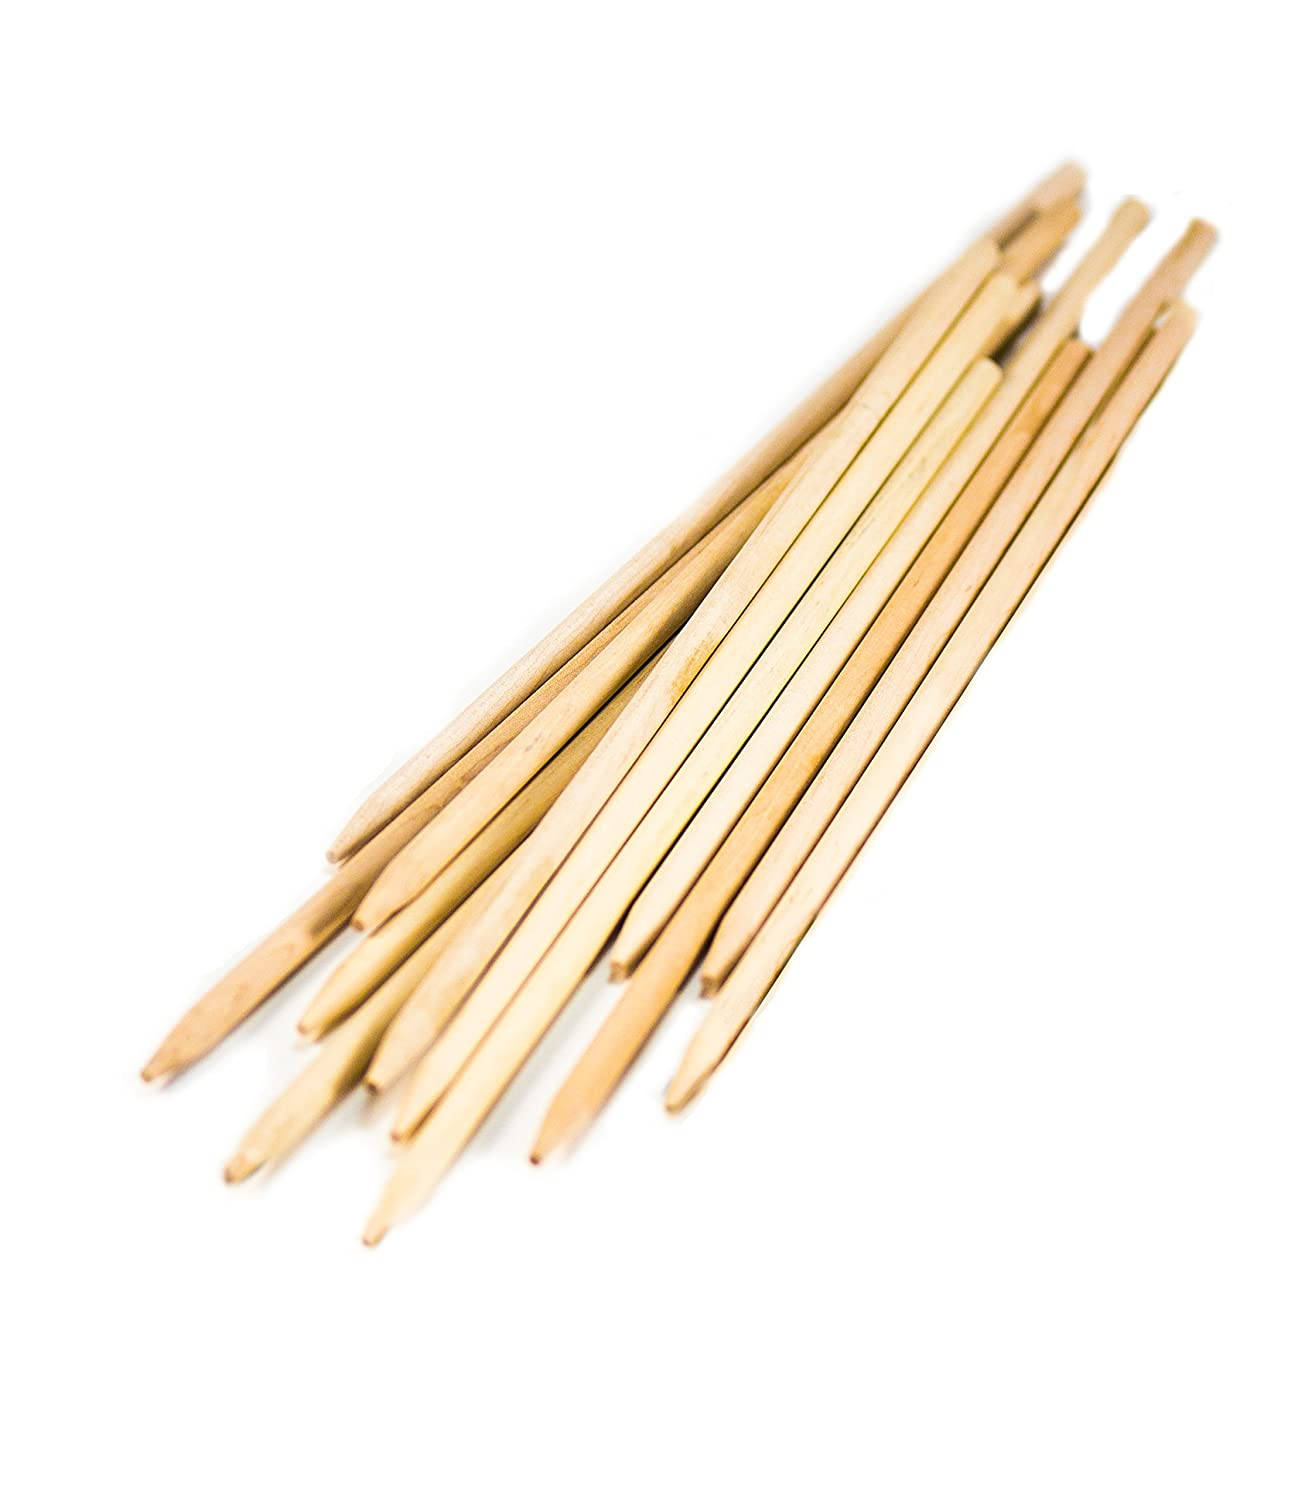 "Perfect Stix Semi Pointed Wooden Skewers 4.5"" x 11/64"" ( pack of 100)"